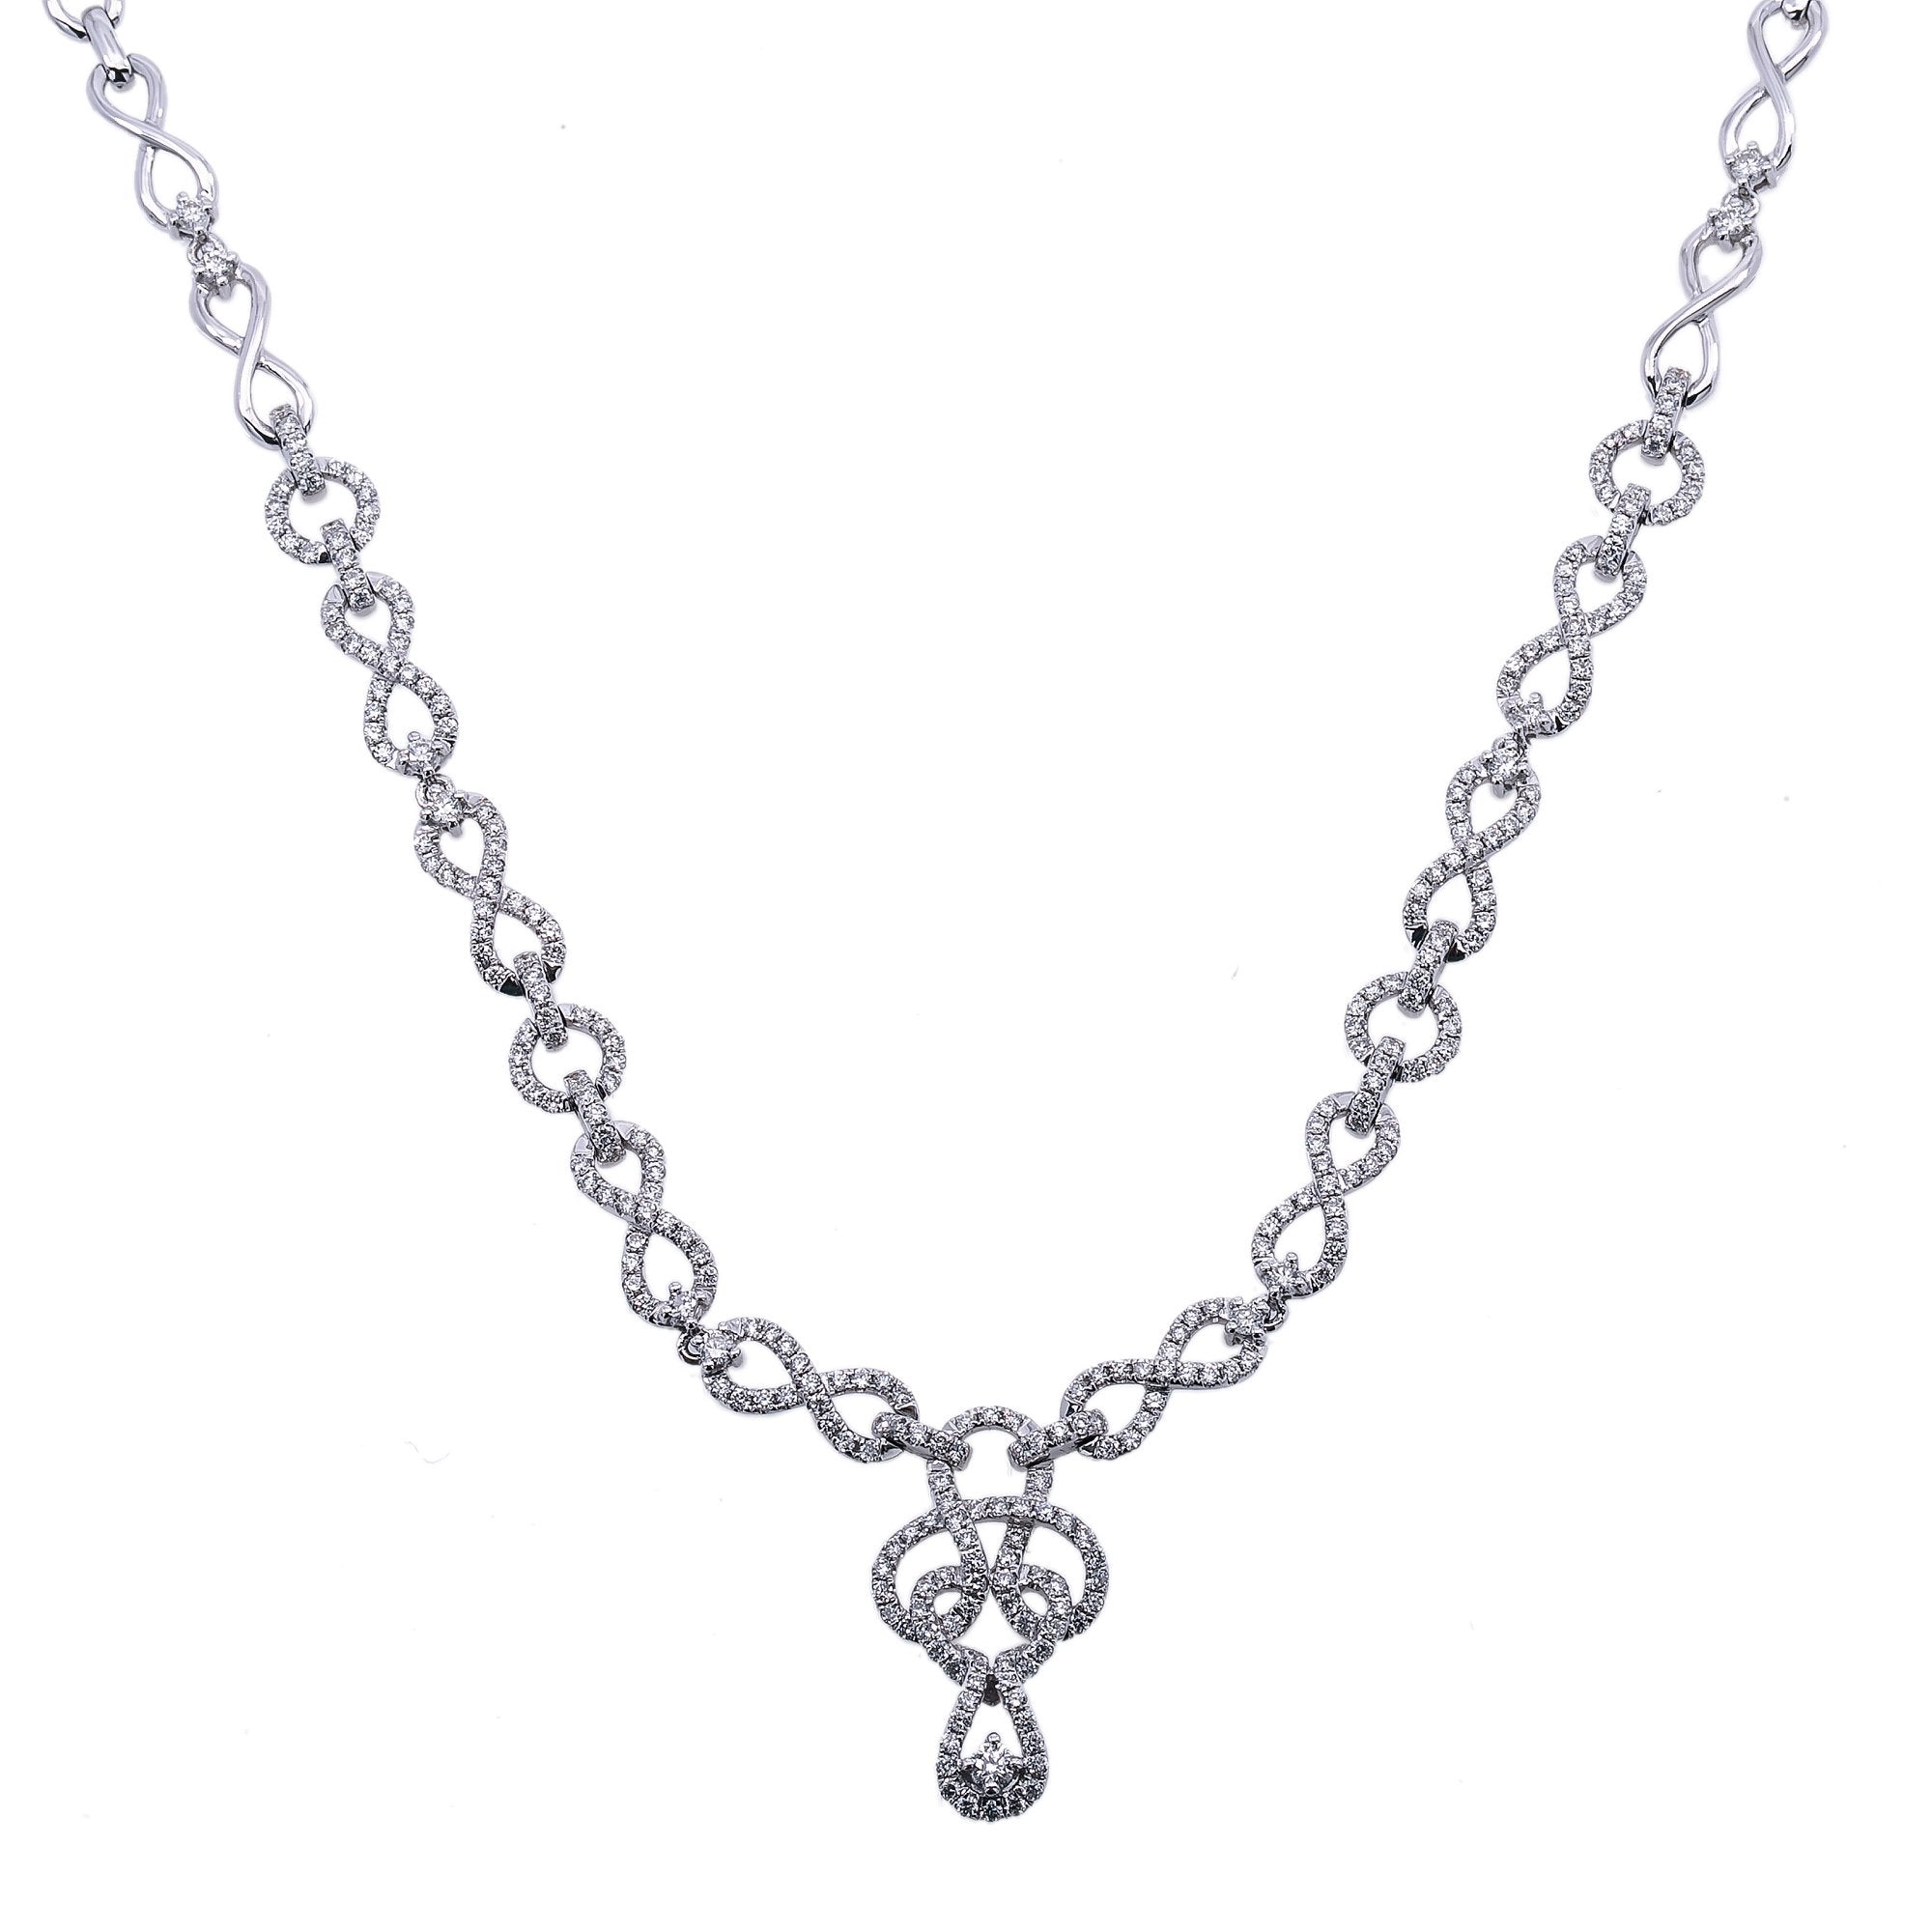 18K White Gold Women's Necklace 2.54 CT Diamonds